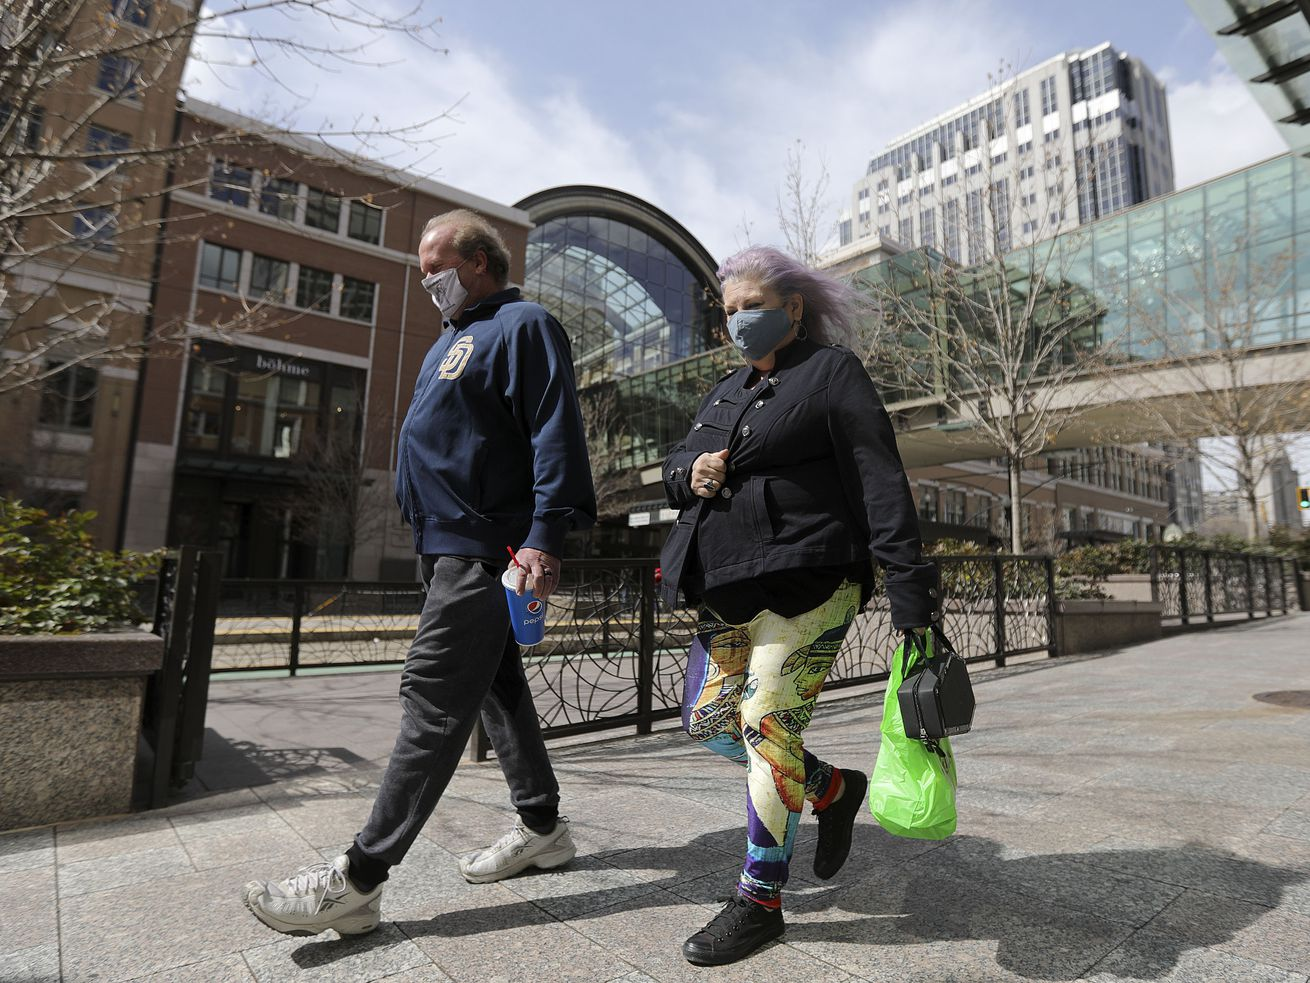 John Forker, left, and Jill Forker wear masks while walking in downtown Salt Lake City on Wednesday, March 24, 2021.